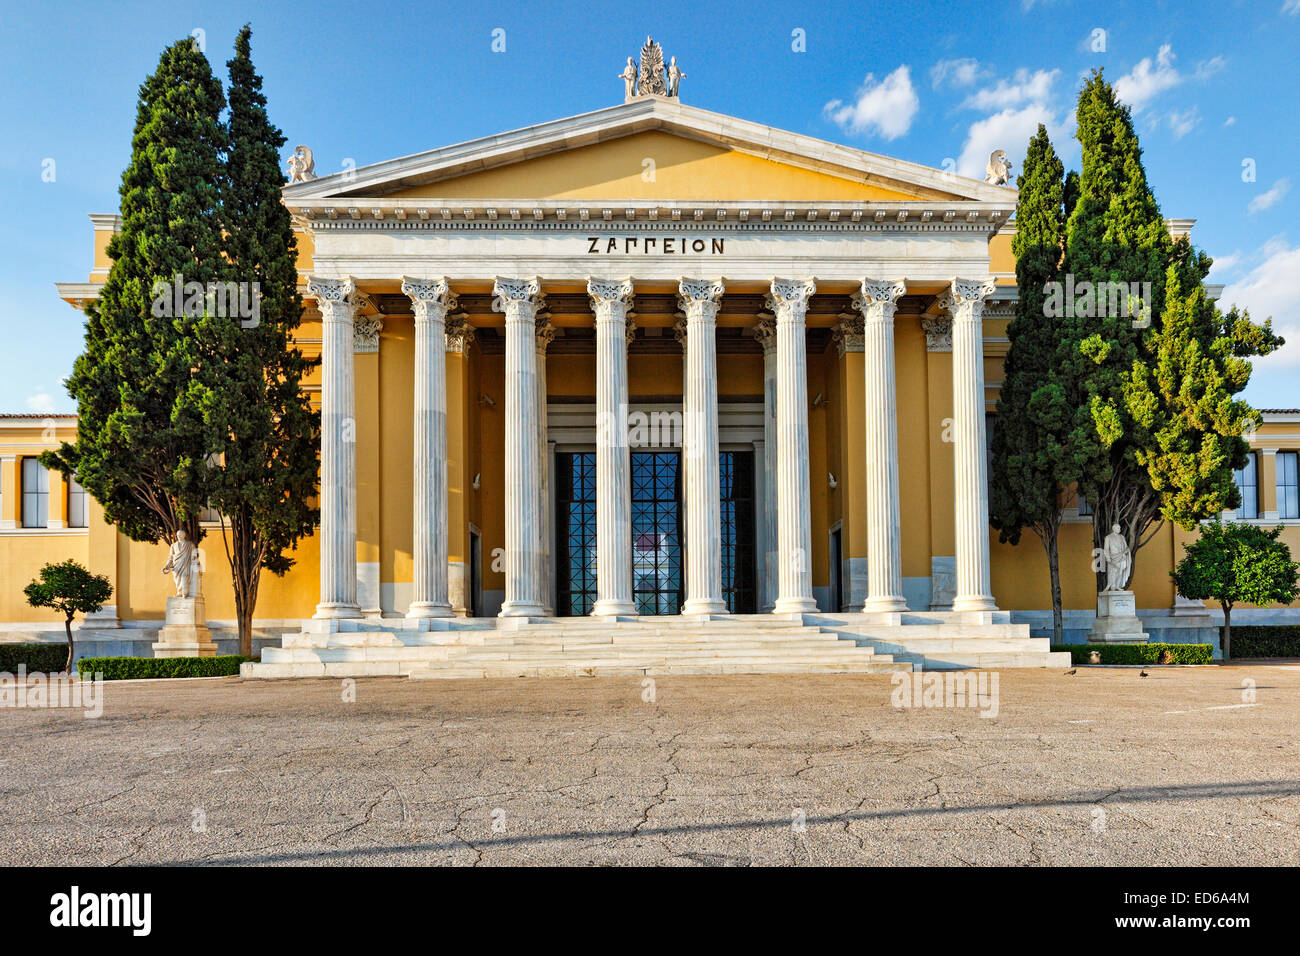 The Zappeion is a building in the National Gardens of Athens, Greece - Stock Image